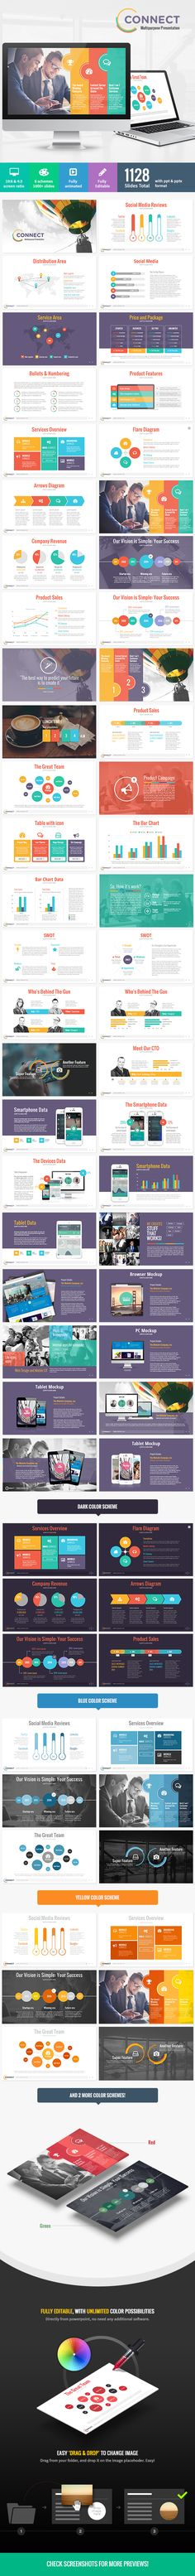 Connect - Modern Powerpoint Template (Powerpoint Templates) rsz untitled 1